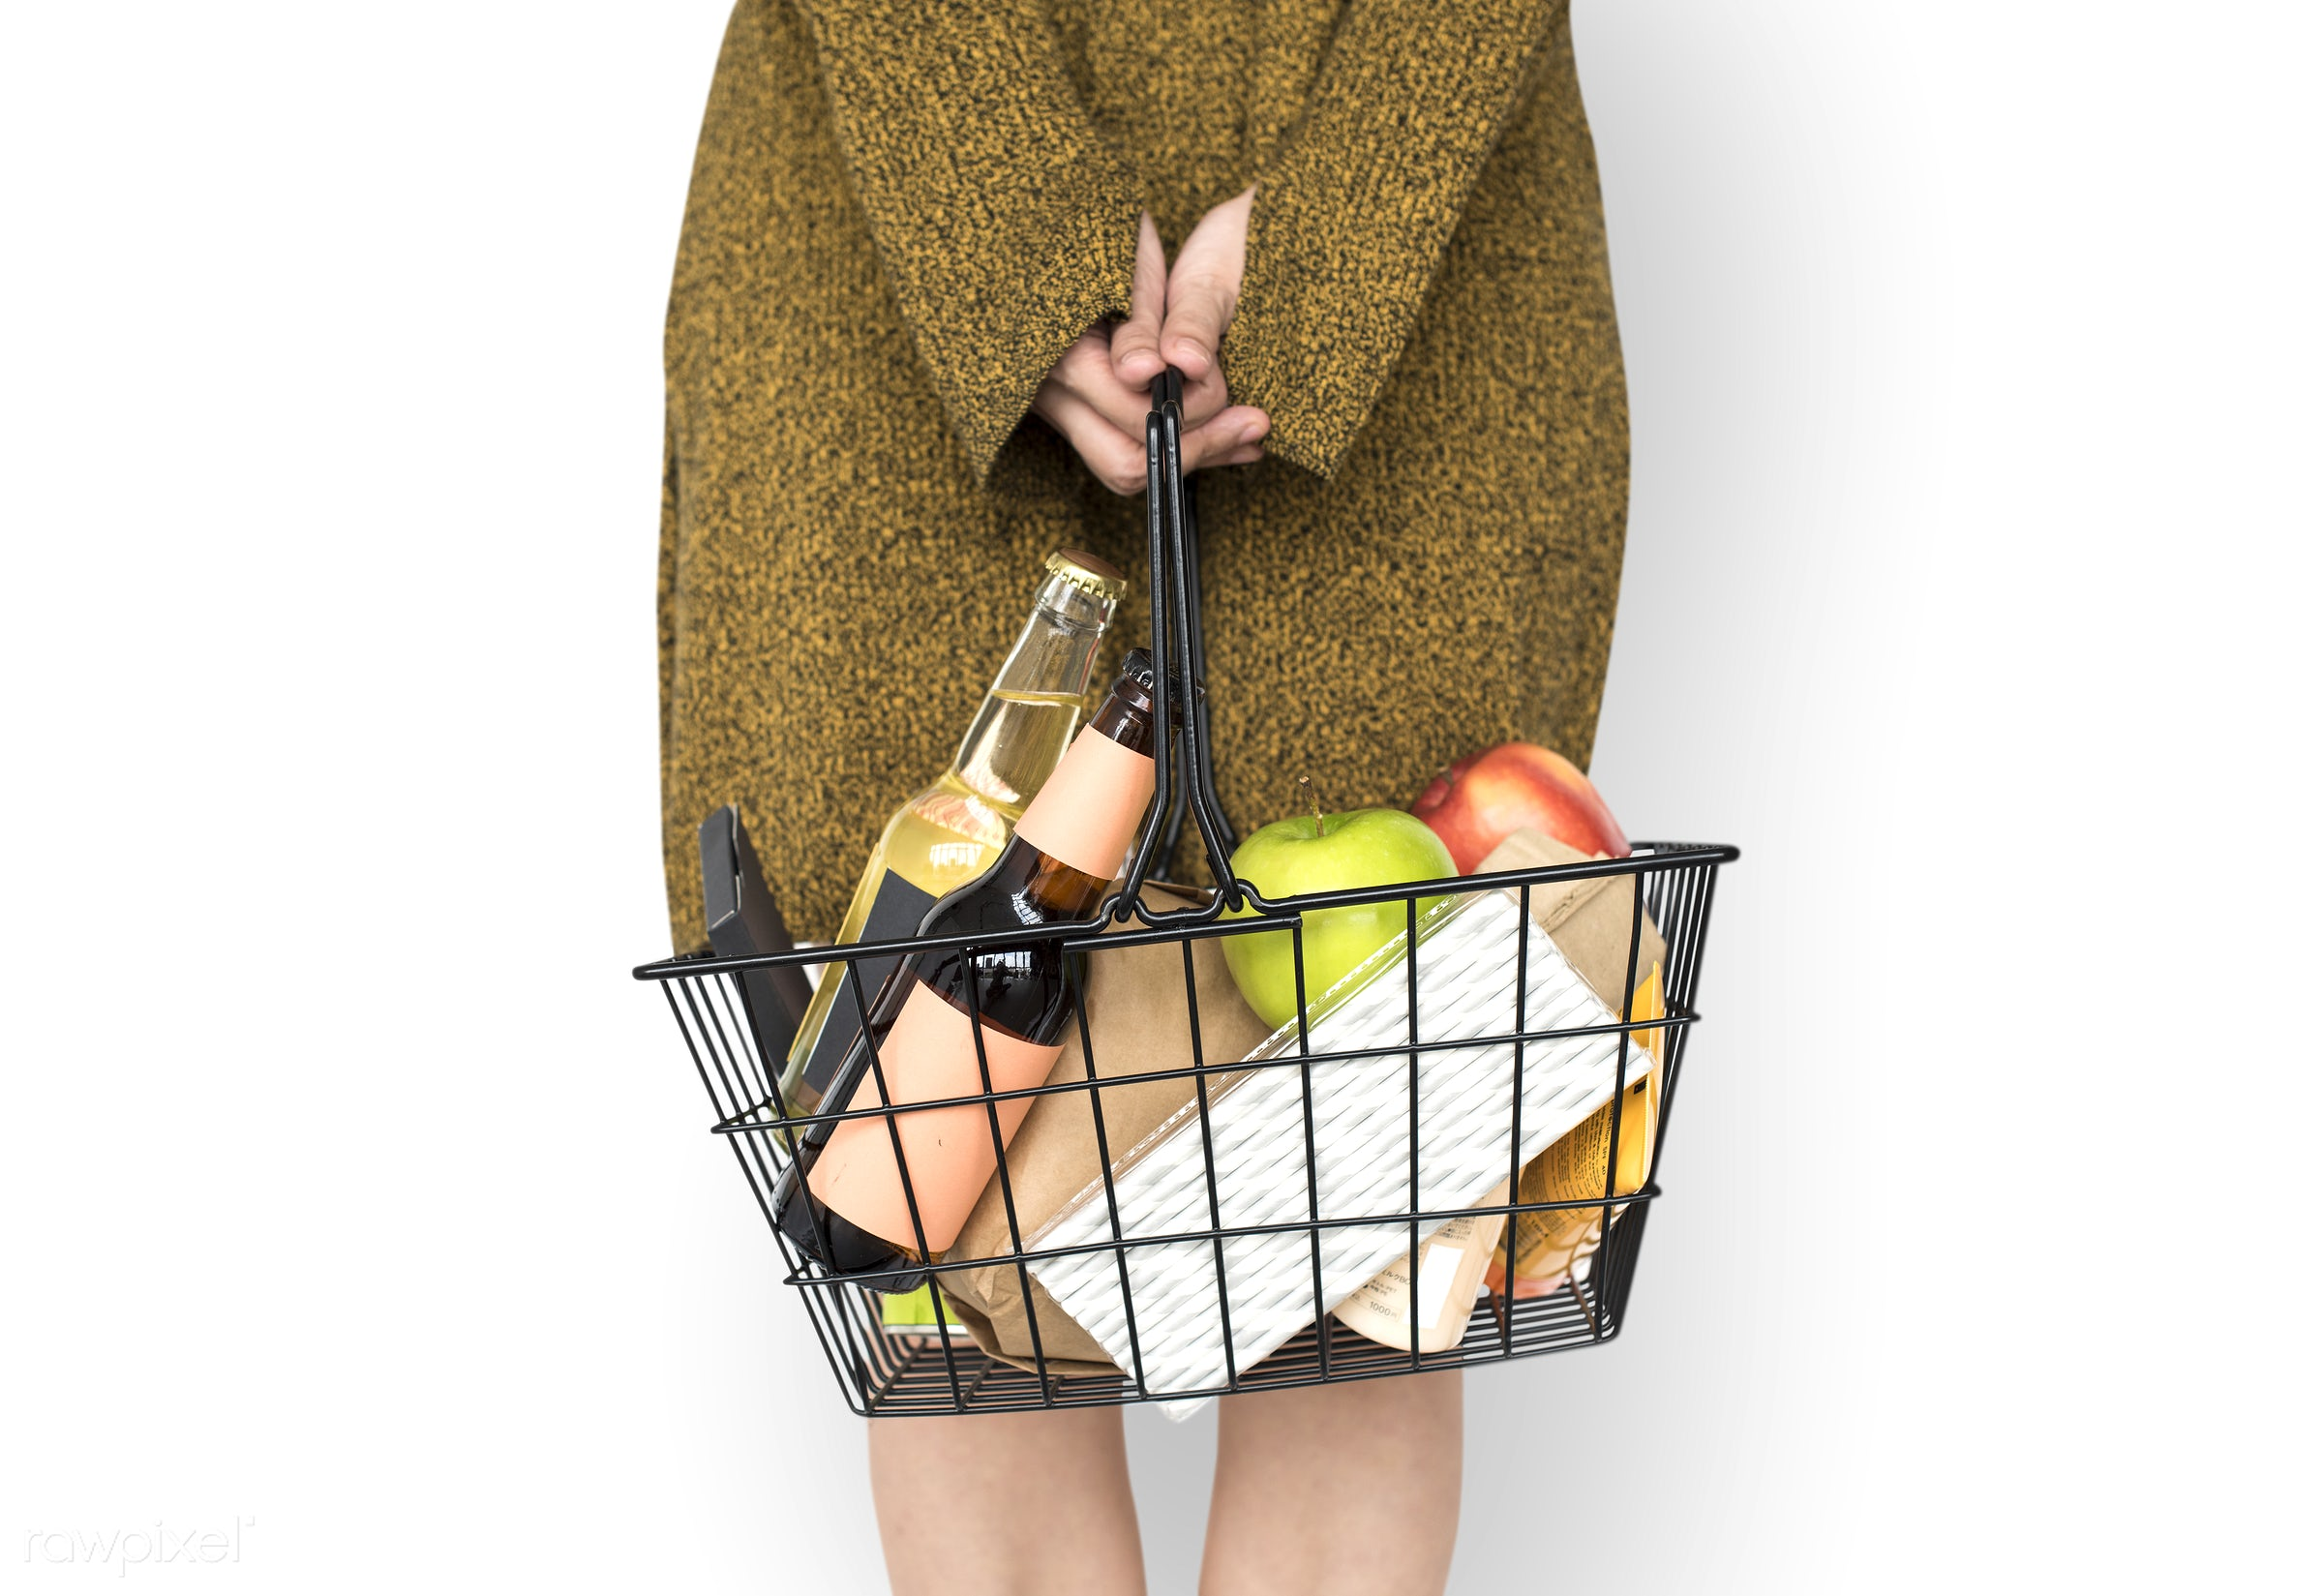 grocery, studio, person, isolated on white, goods, people, drinks, girl, carrying, solo, woman, casual, wine, isolated,...